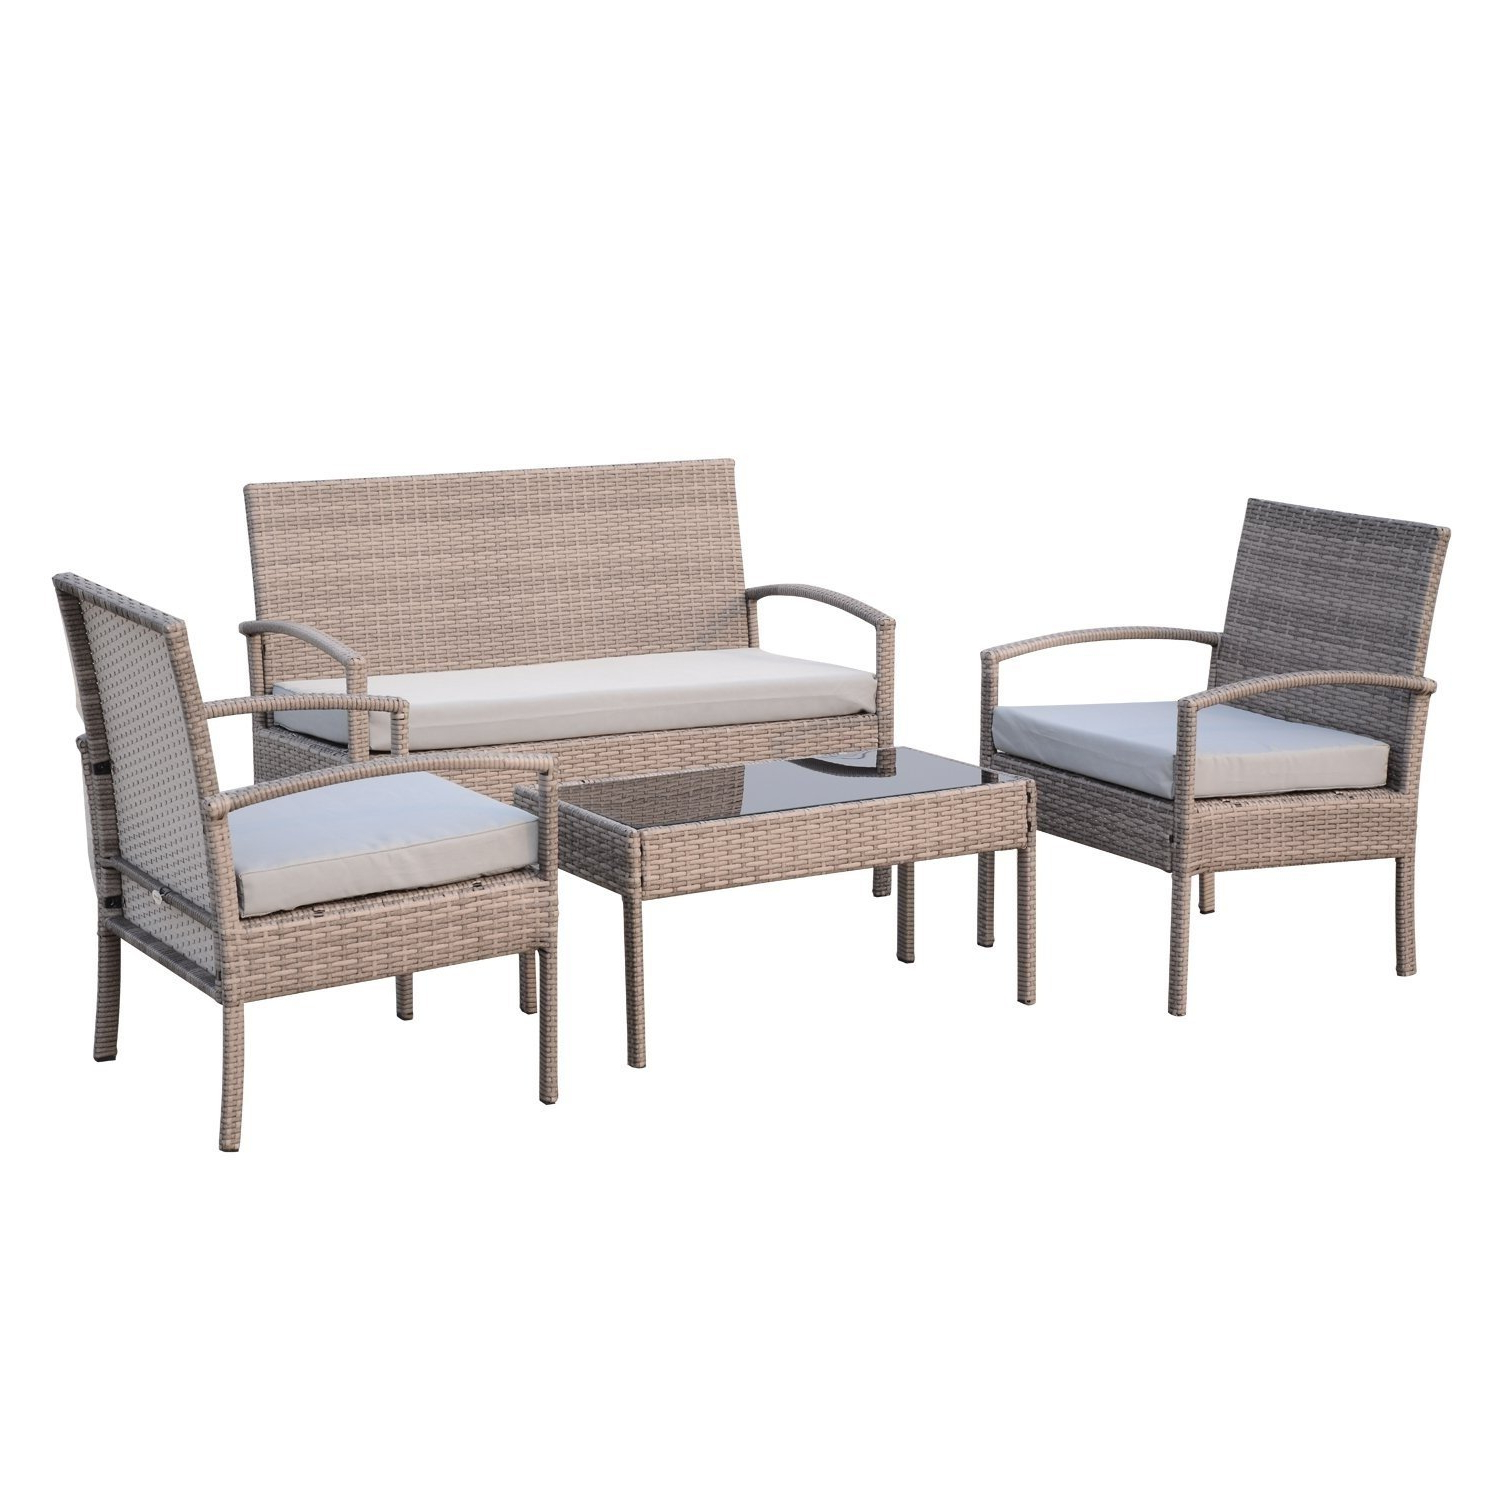 Outsunny 4 Piece Outdoor Rattan Wicker Patio Conversation For Newest Mullenax Outdoor Loveseats With Cushions (Gallery 11 of 20)